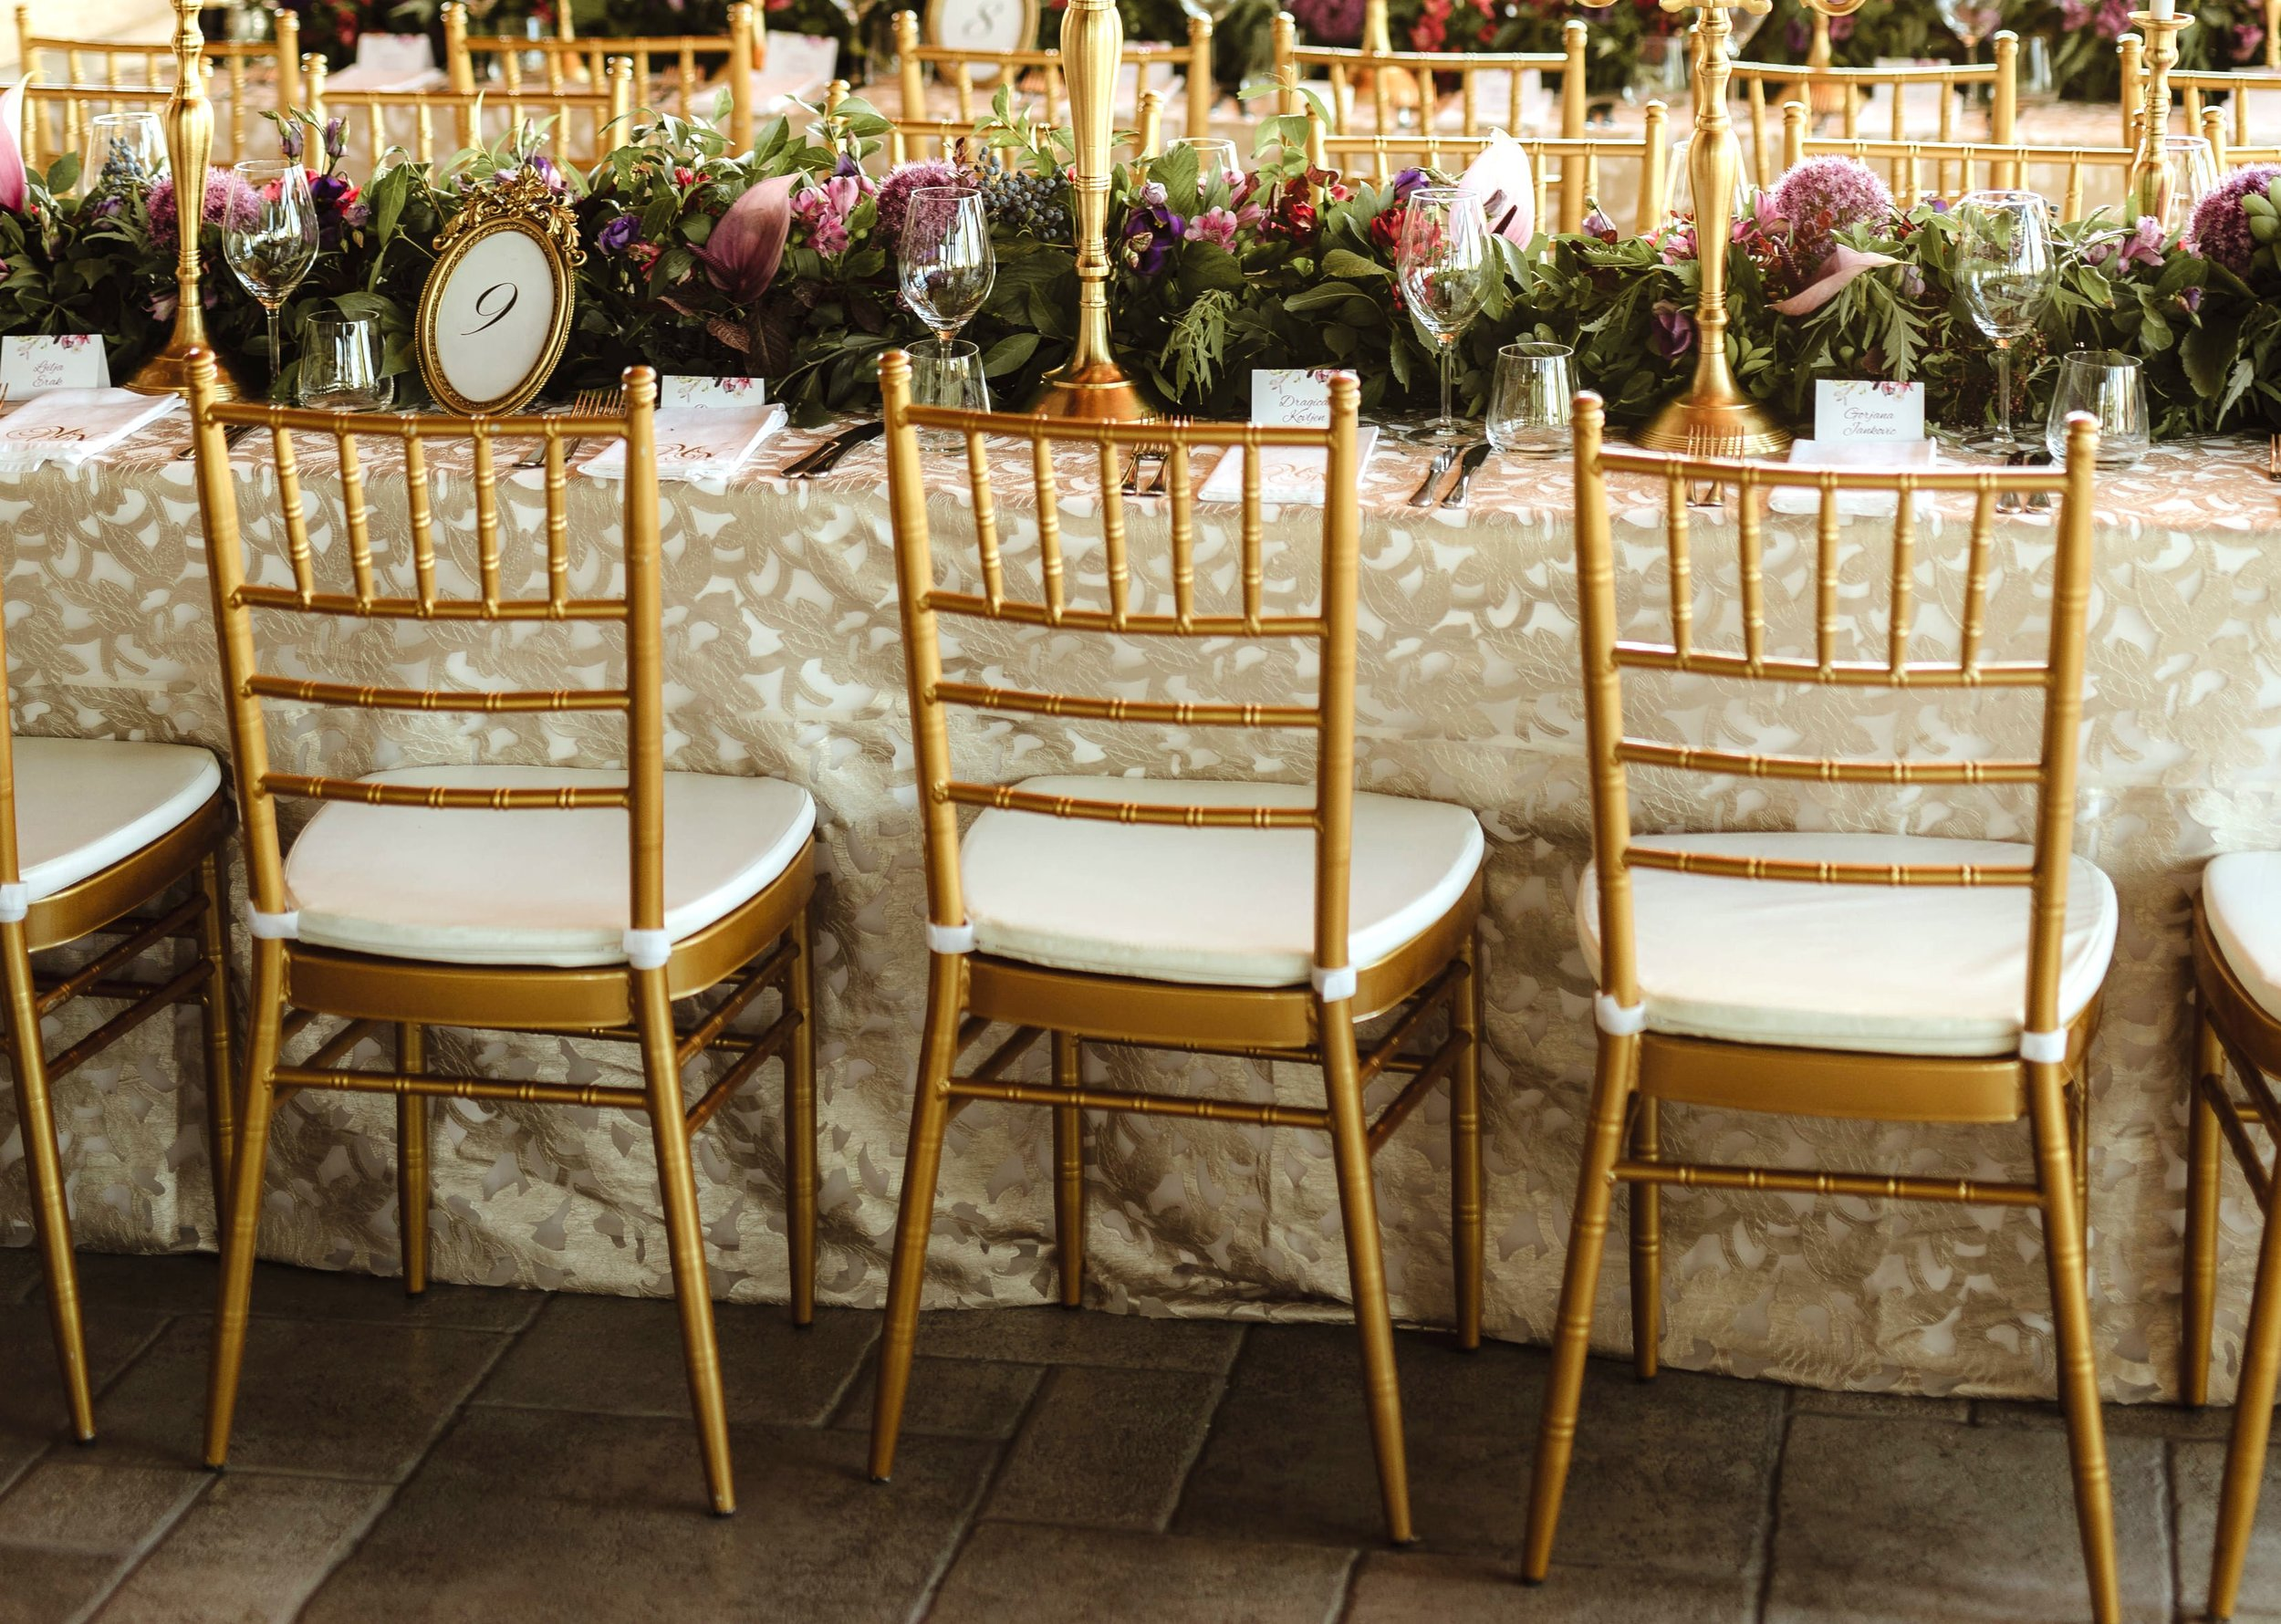 gold_tiffany_chairs_wedding_styling_luxury_linen.jpg